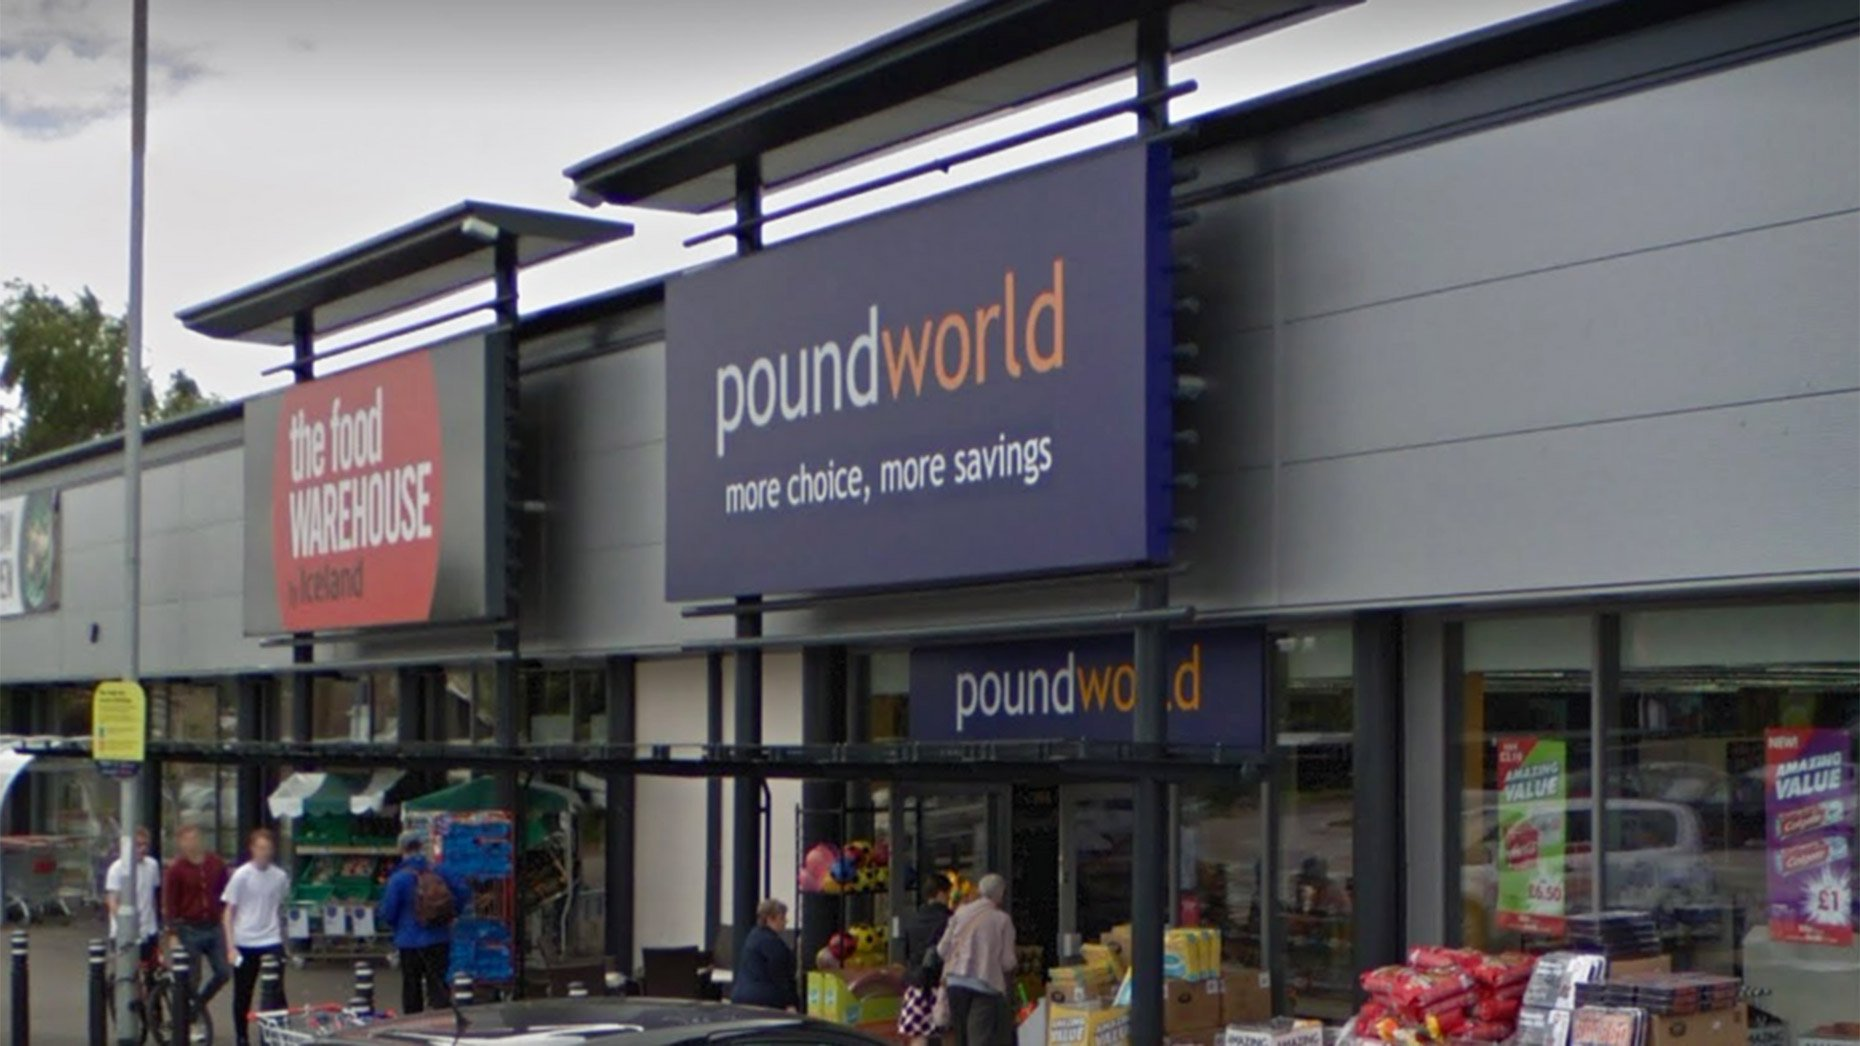 Poundworld teeters on the brink of going into administration